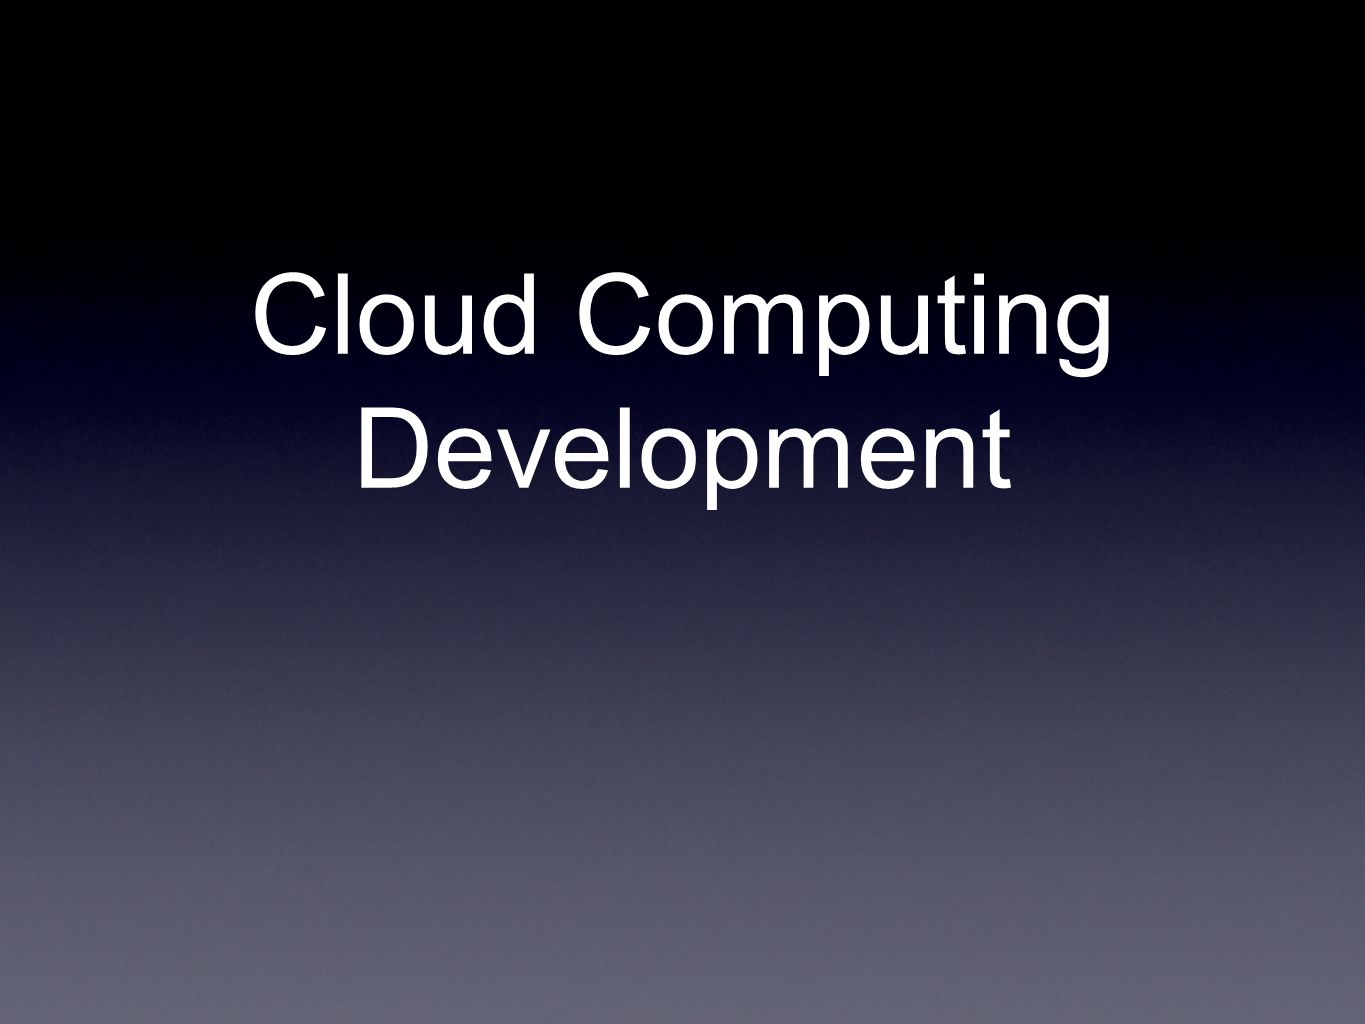 Cloud Computing Development